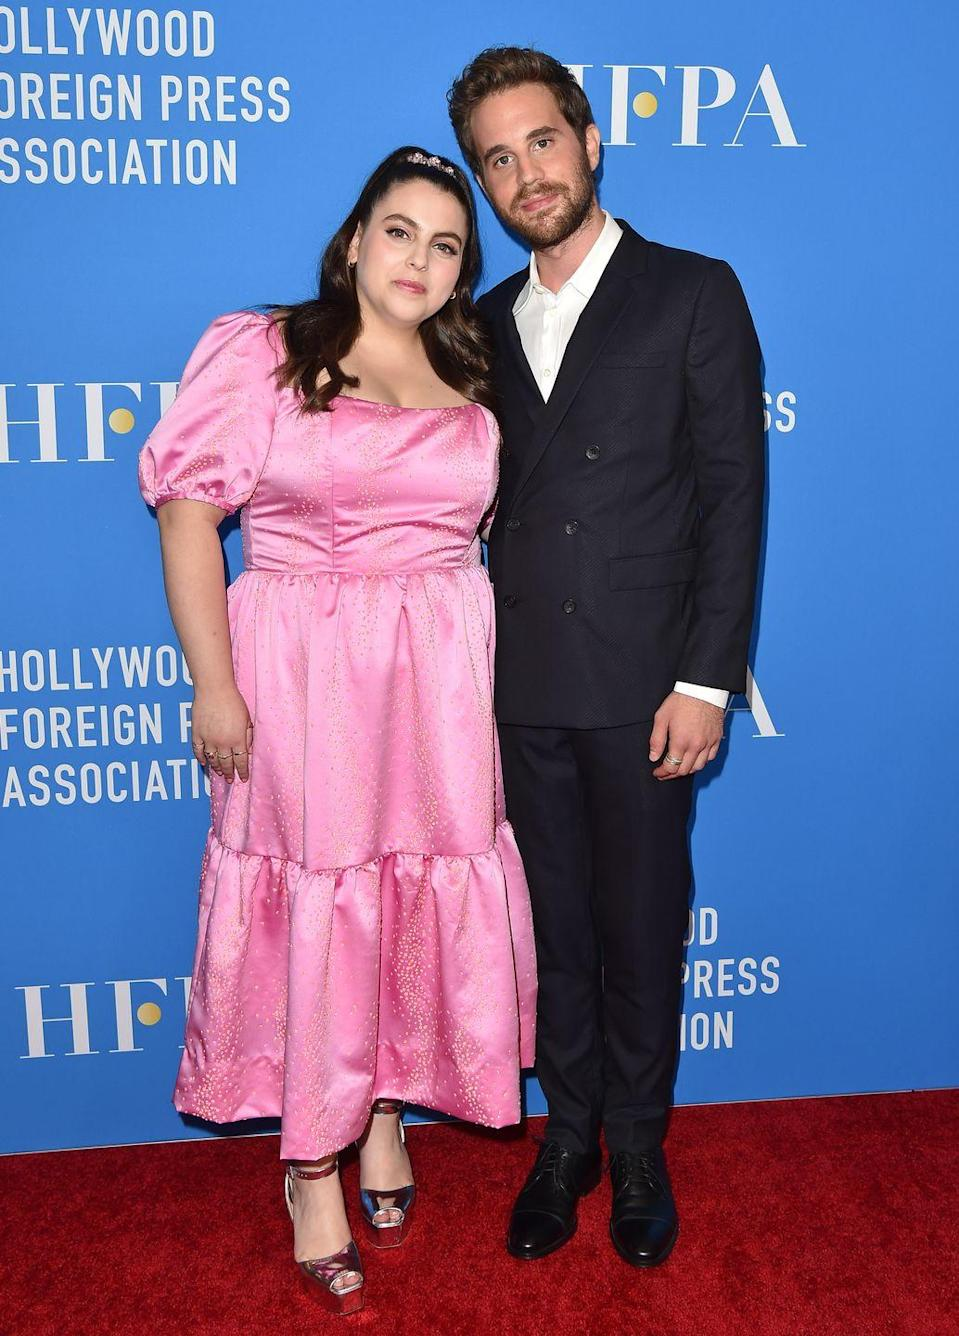 """<p>""""What I can say is that I think what Ben and I have is beyond friendship, honestly. It's like a soulmate connection. We're like twins separated at birth or something."""" — Beanie Feldstein, <a href=""""https://www.broadway.com/buzz/199295/beanie-feldstein-on-her-soulmate-connection-with-ben-platt-why-the-merrily-we-roll-along-film-will-be-worth-the-wait/"""" rel=""""nofollow noopener"""" target=""""_blank"""" data-ylk=""""slk:Broadway.com"""" class=""""link rapid-noclick-resp"""">Broadway.com</a></p><p>""""Happy 26th Birthday to my twin-soulmate-wife-mother-spirit-guide of over a decade <a href=""""https://www.instagram.com/beaniefeldstein/"""" rel=""""nofollow noopener"""" target=""""_blank"""" data-ylk=""""slk:@beaniefeldstein"""" class=""""link rapid-noclick-resp"""">@beaniefeldstein</a>. Thank you for filling my life with endless love and vegan snacks. I love you forever. ❤️"""" — Ben Platt, <a href=""""https://www.instagram.com/p/BzGOQOohqUr/"""" rel=""""nofollow noopener"""" target=""""_blank"""" data-ylk=""""slk:Instagram"""" class=""""link rapid-noclick-resp"""">Instagram</a></p>"""